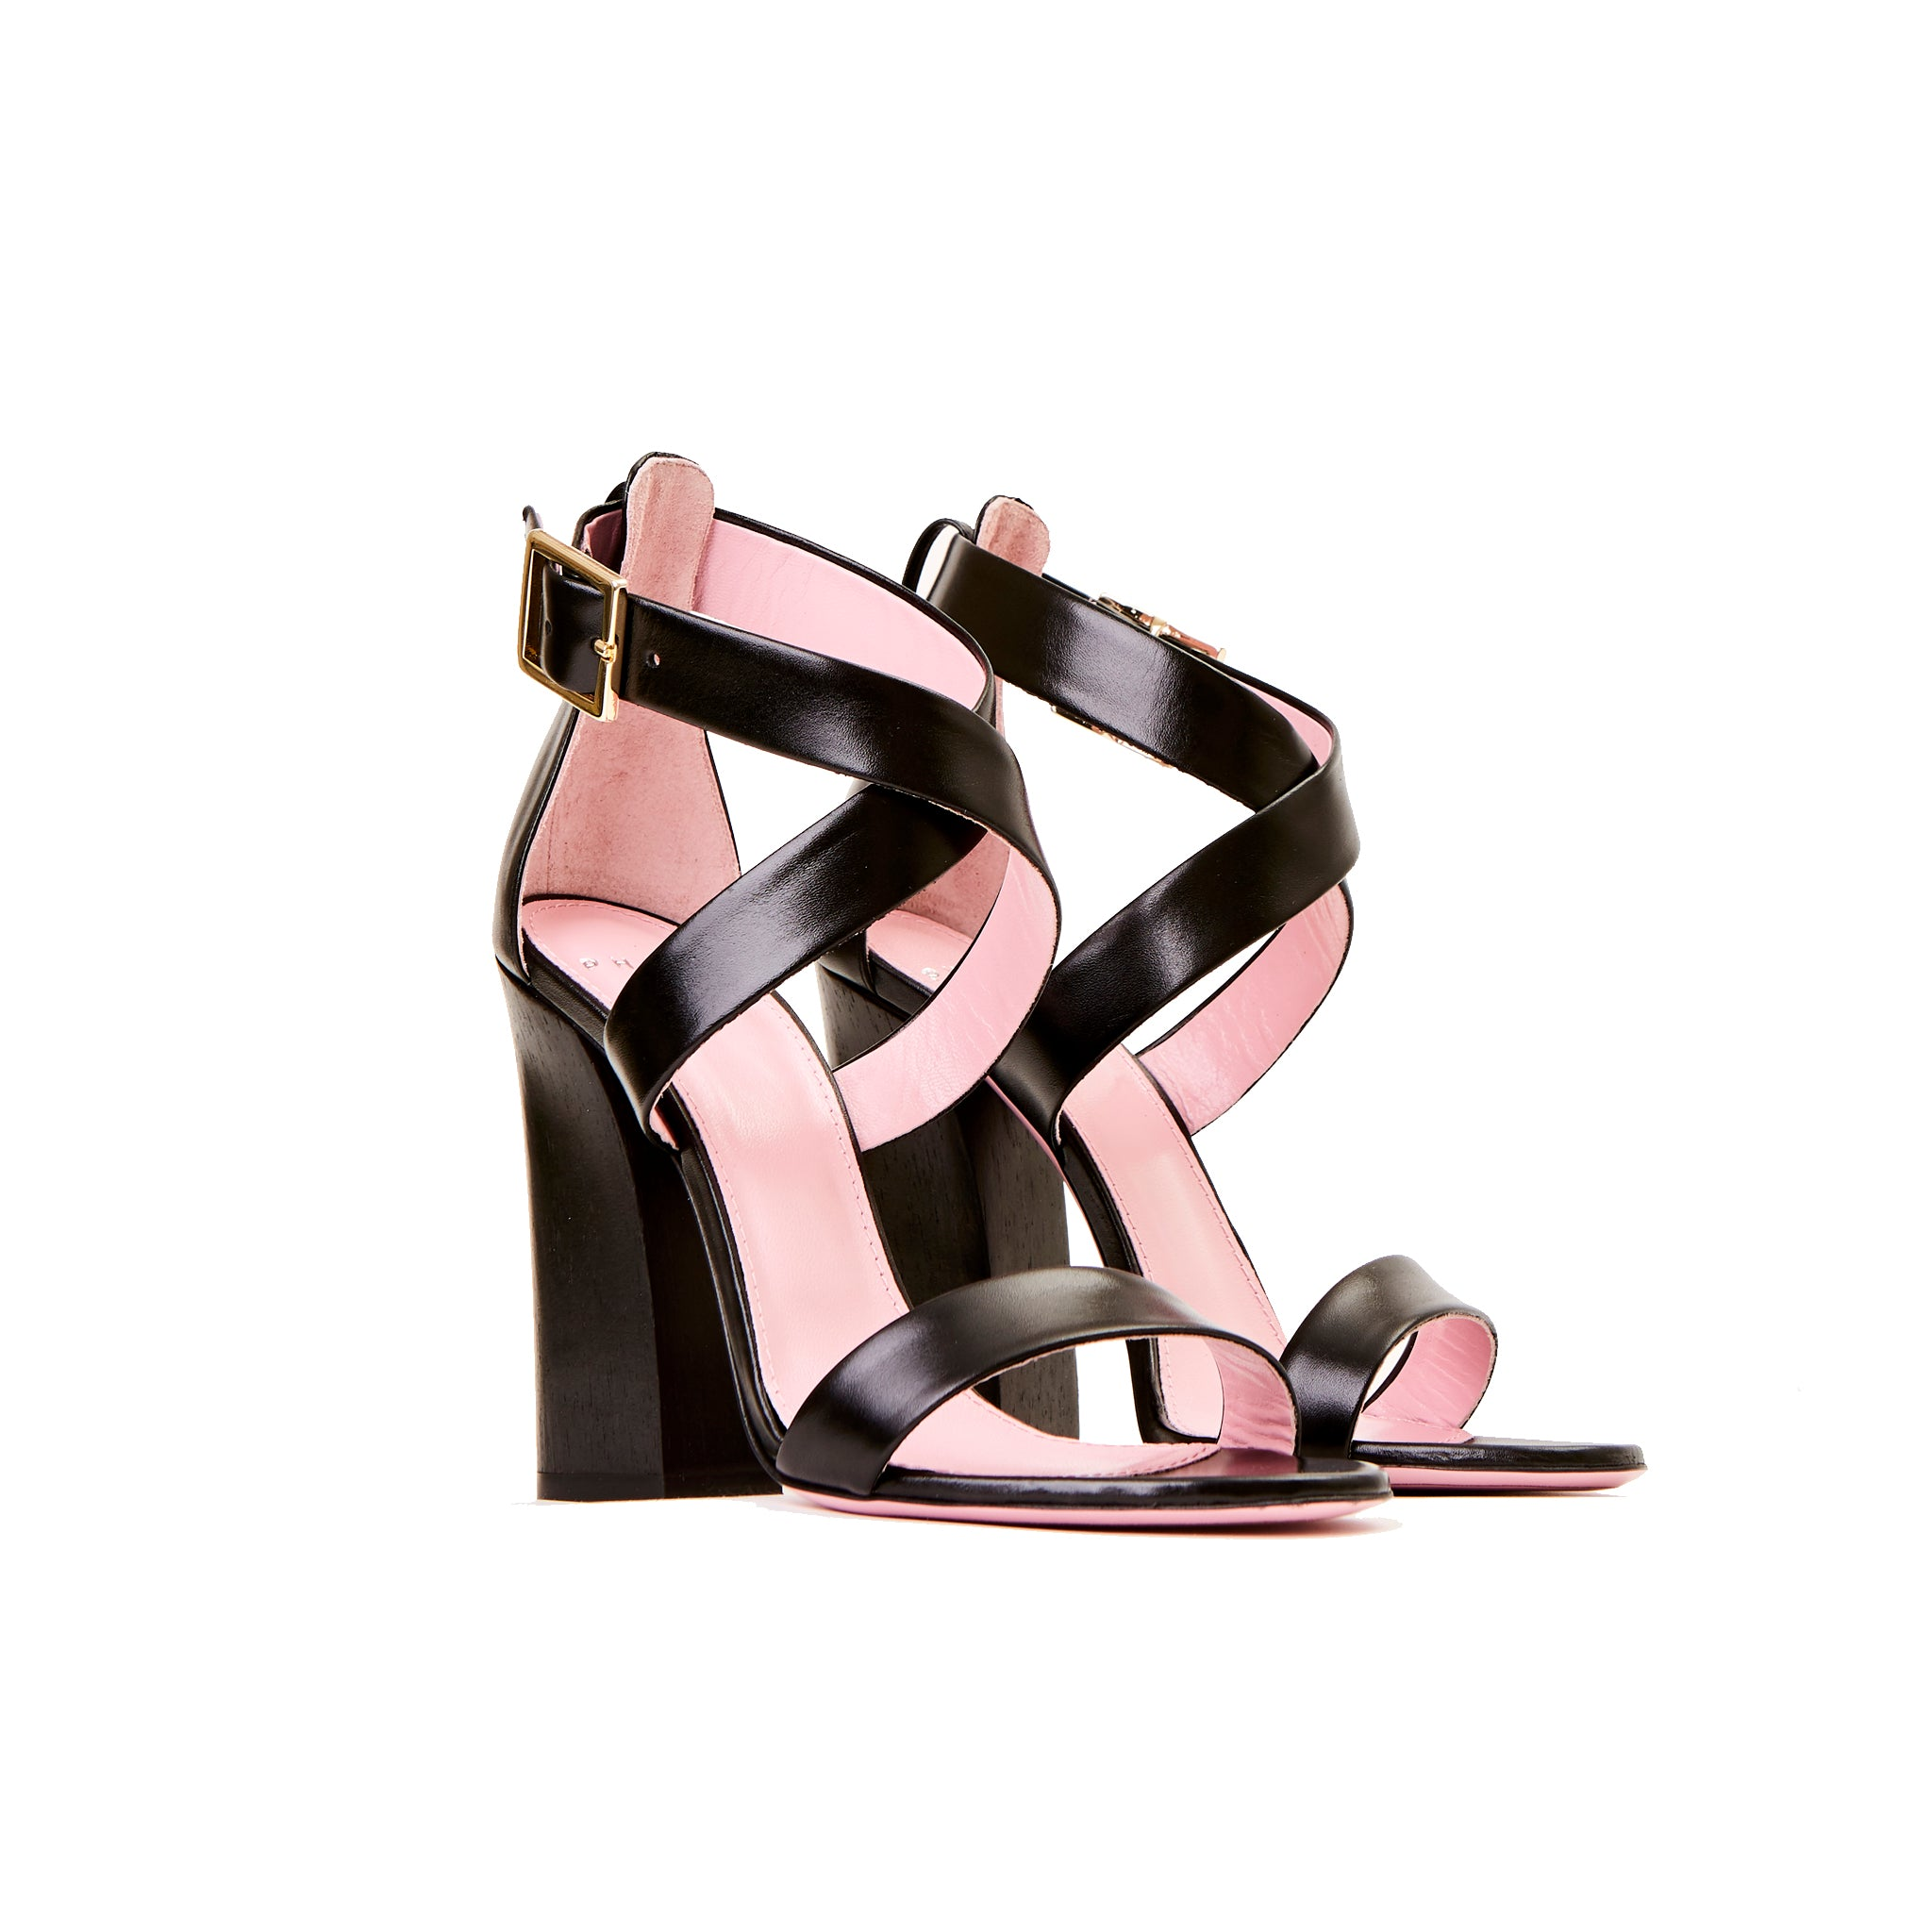 Phare Cross strap block heel sandal with wooden heel in black leather 3/4 view